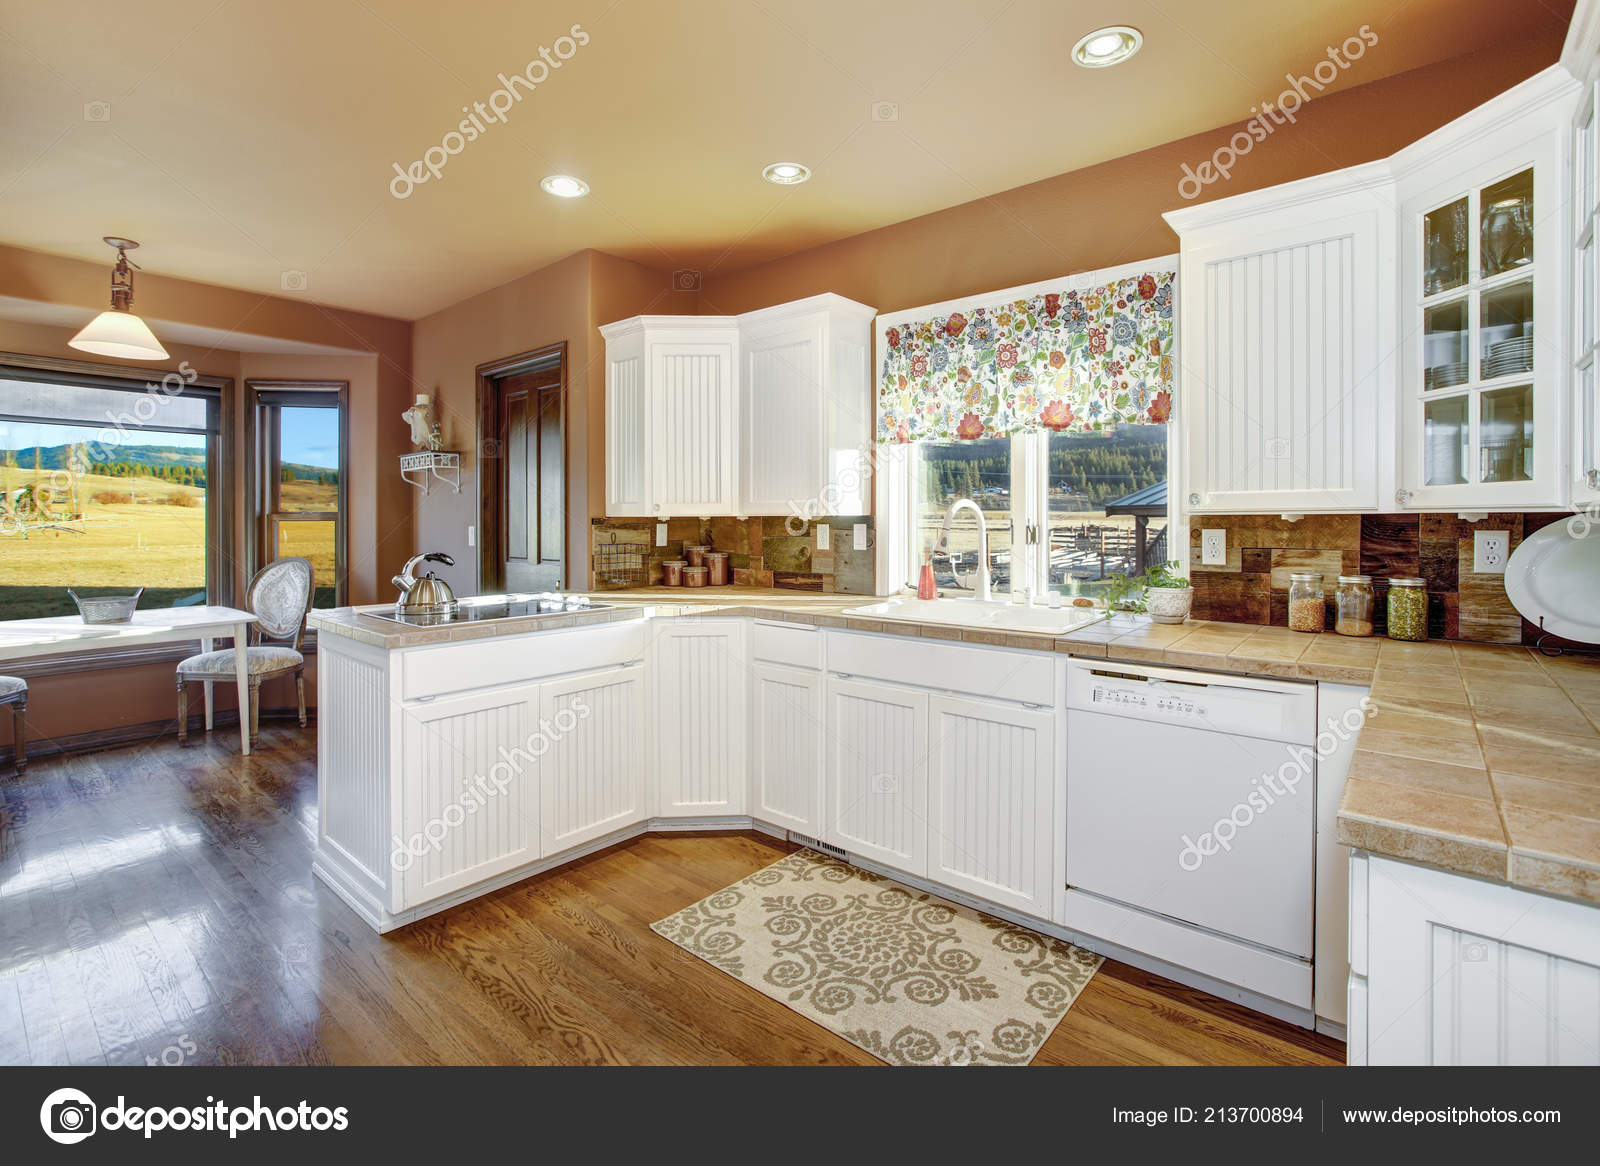 Country Kitchen Features White Cabinets Tile Countertop Rustic Plank Backsplash — Stock Photo